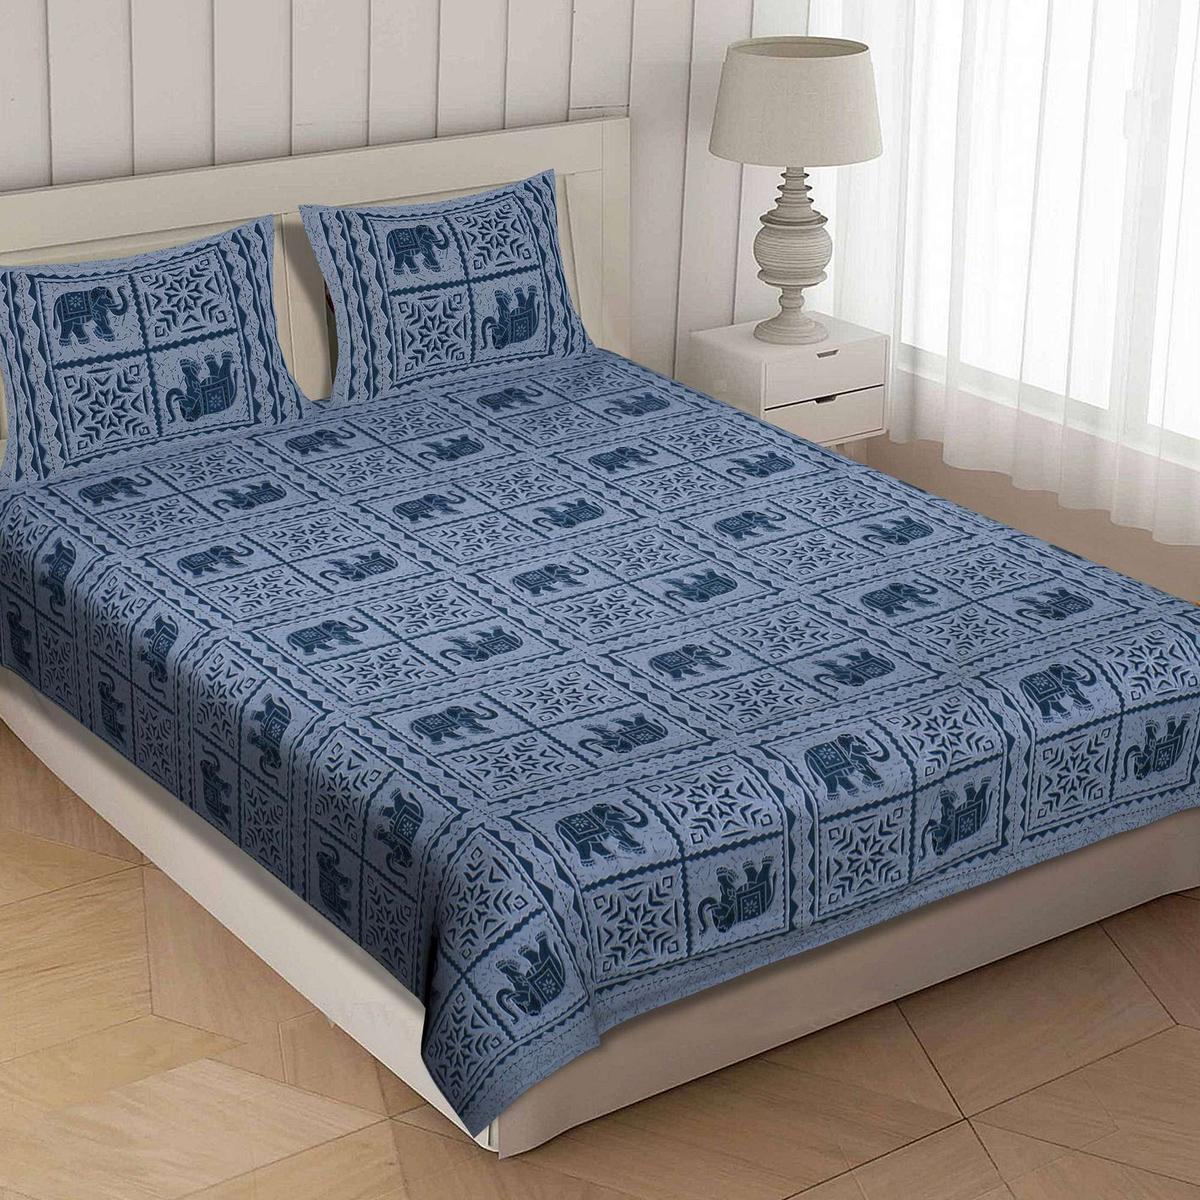 AJ Home - Blue Colored Printed Cotton King Size Bedsheet With 2 Pillow Cover